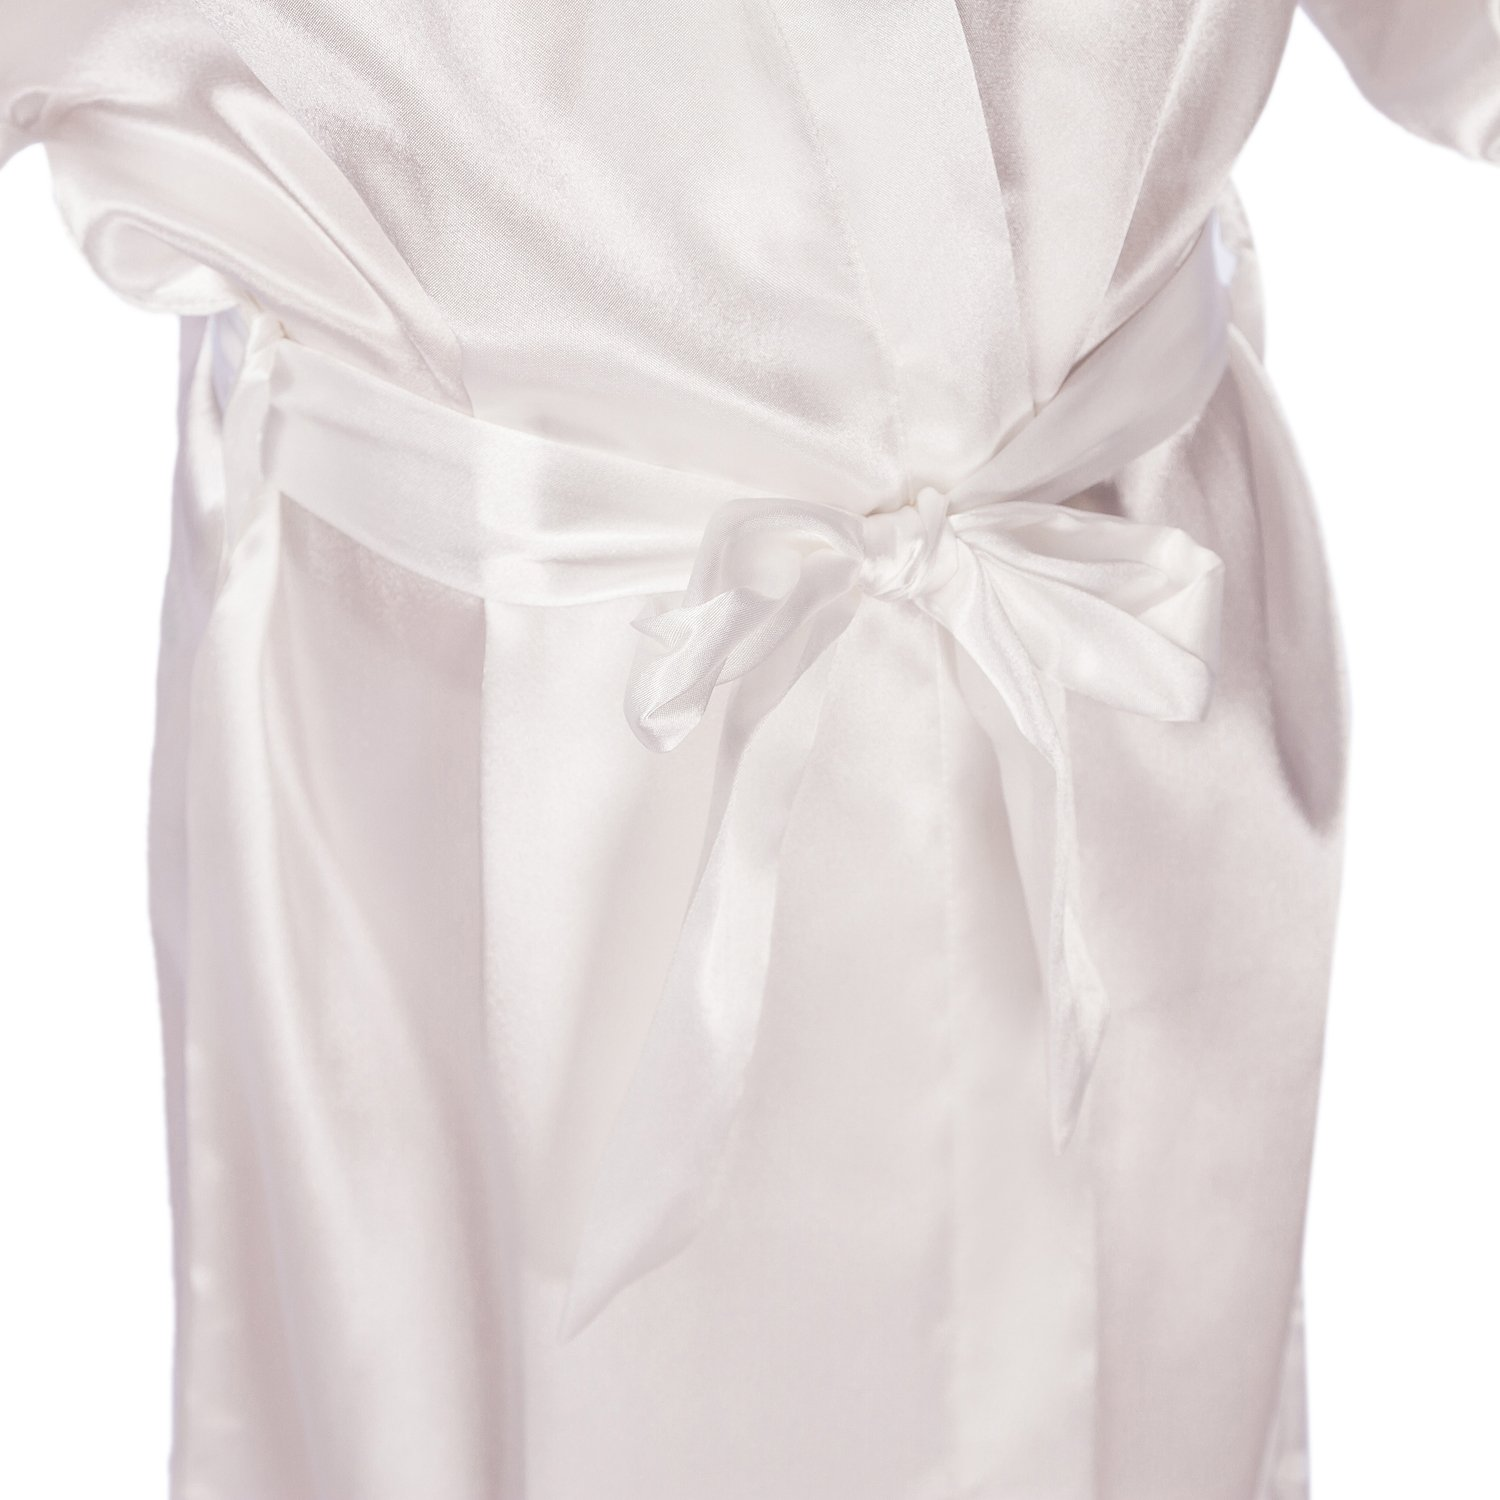 SexyTown Flower Girl Robes Satin Nightgown Wedding Party Getting Ready Robe with Gold Glitter